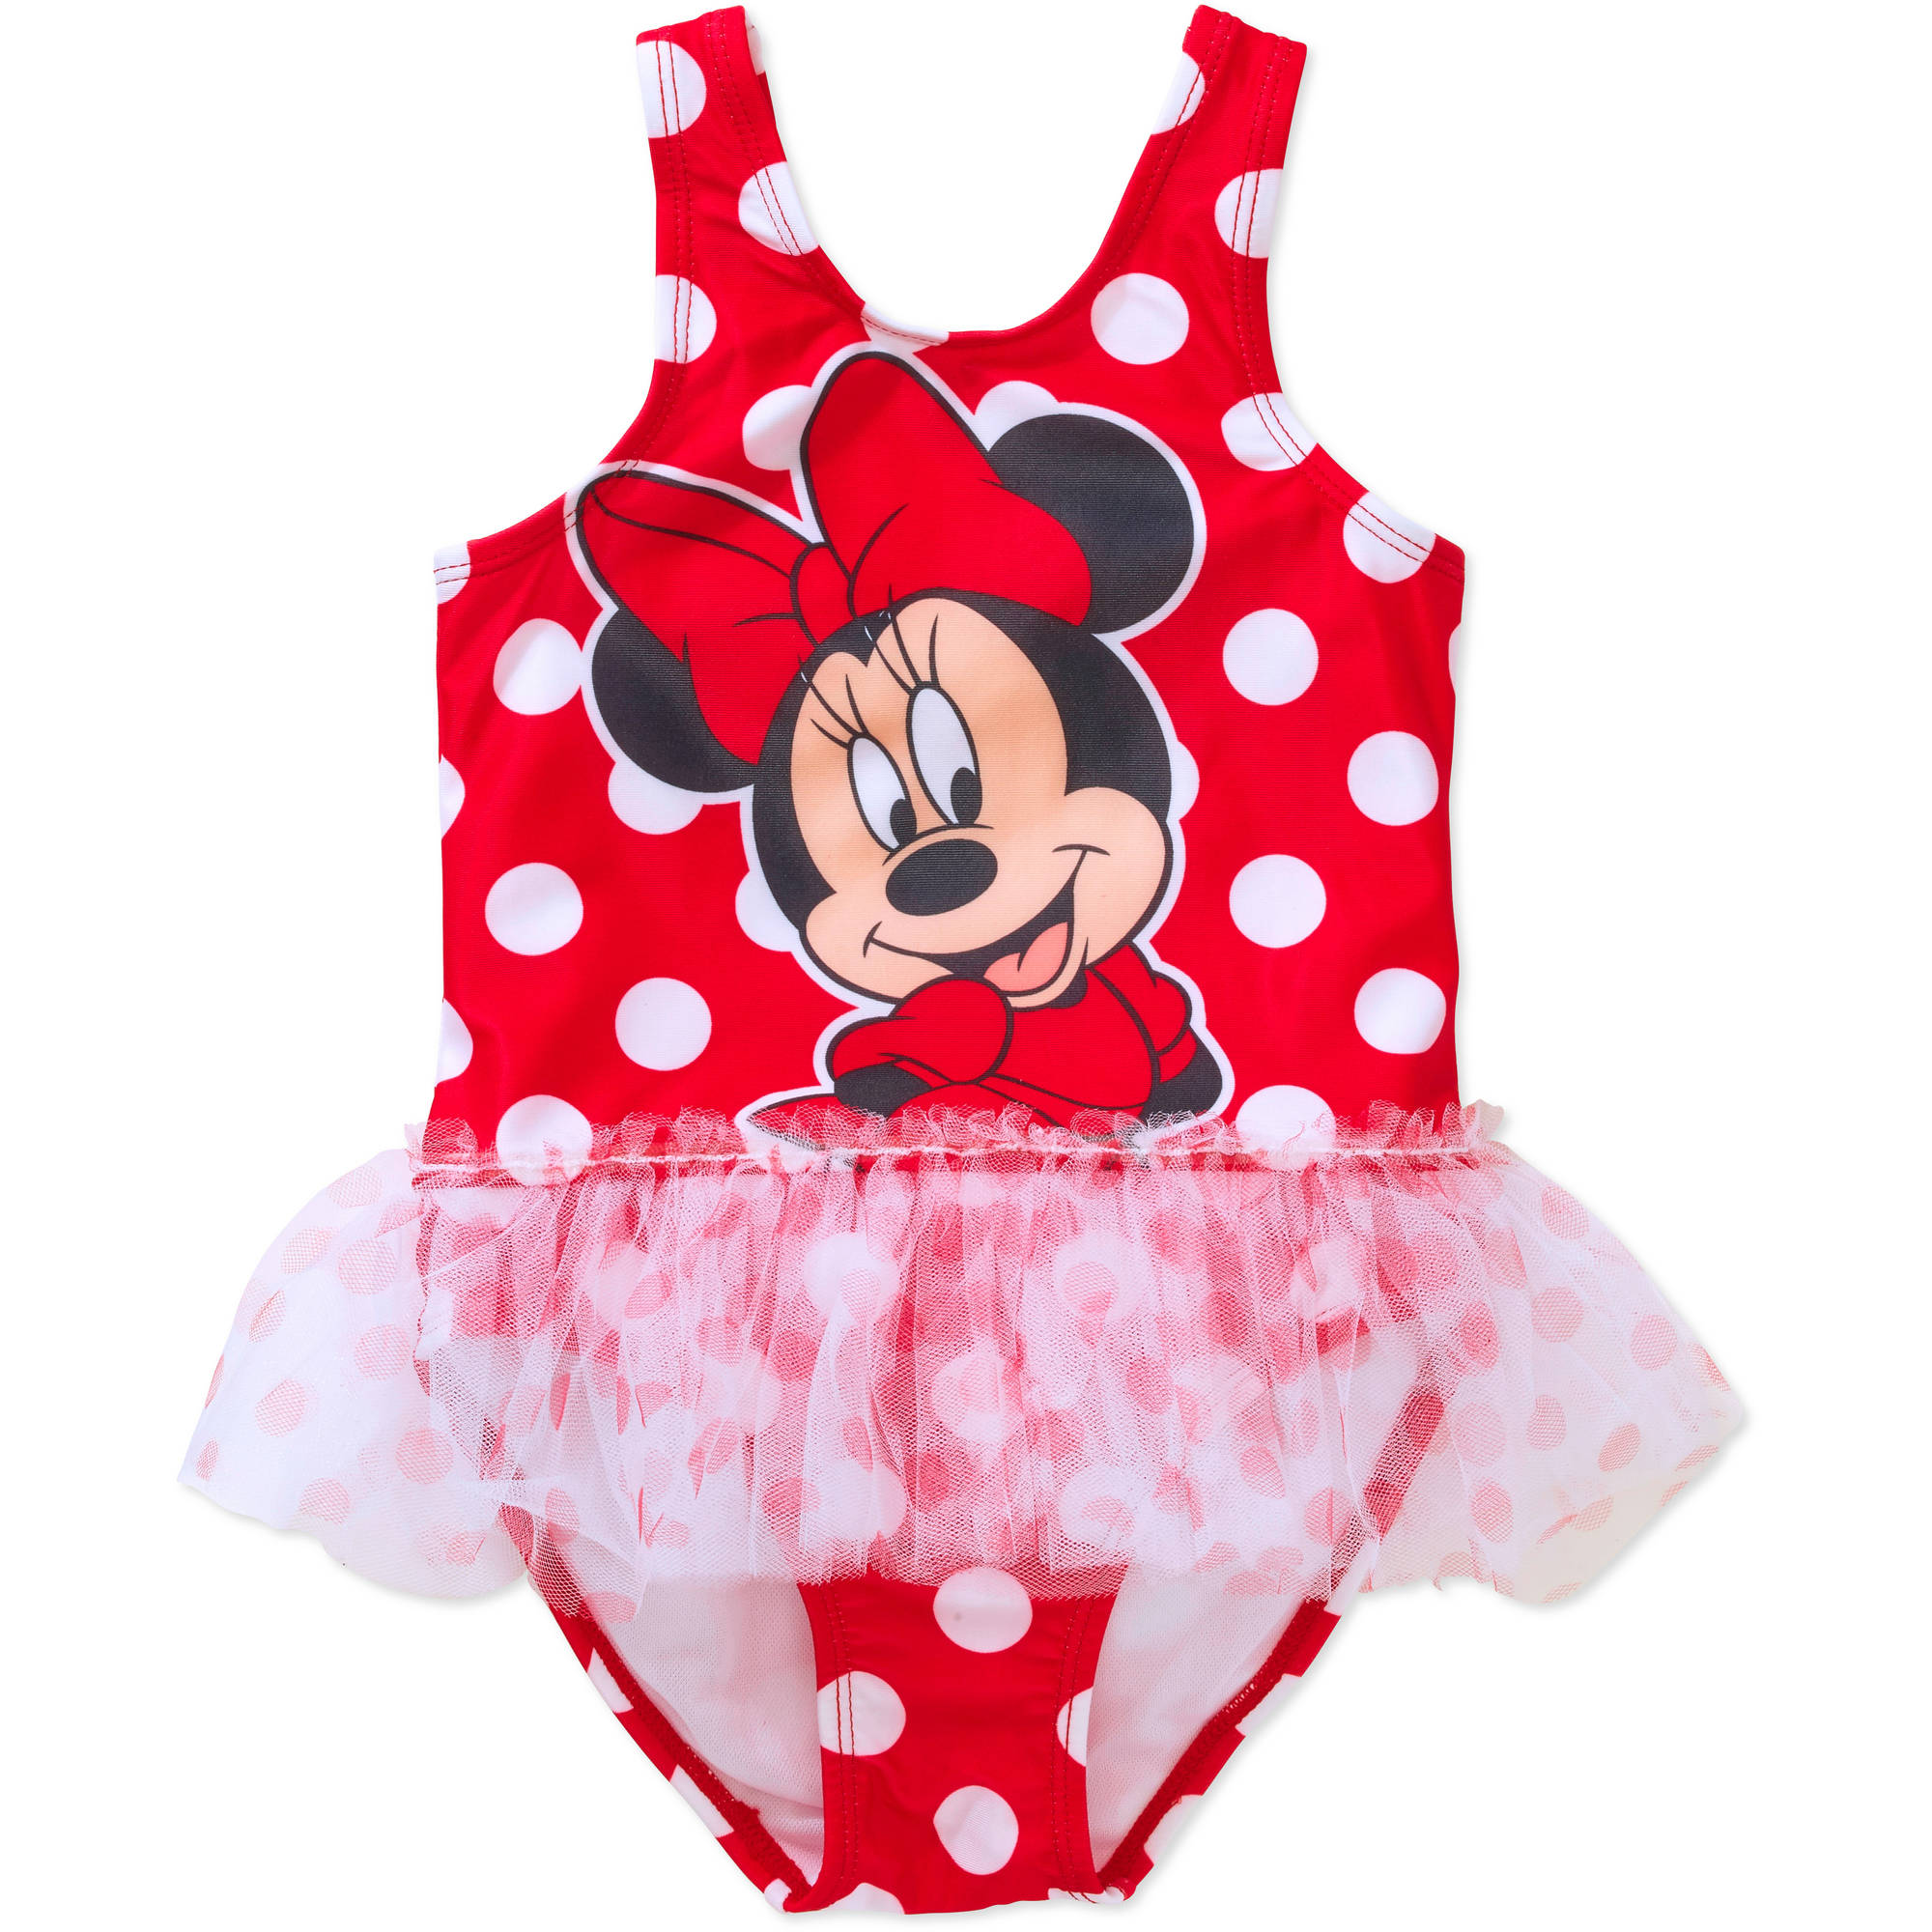 Toddler Girl Tutu 1-Piece Polka Dot Swimsuit